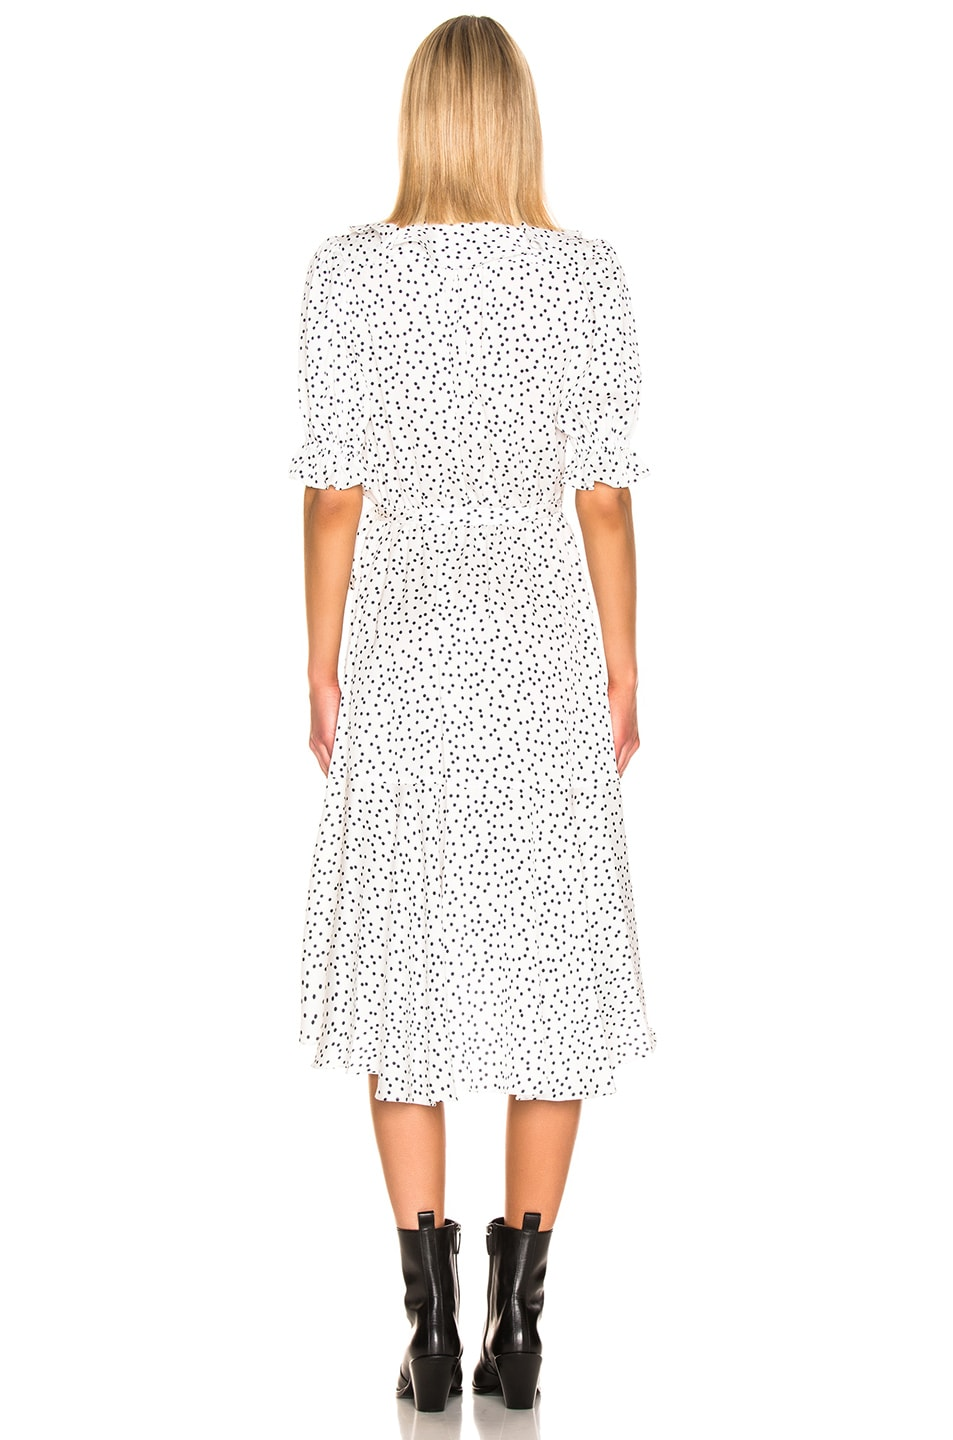 Image 3 of ICONS Objects of Devotion Cha Cha Dress in White & Navy Dot